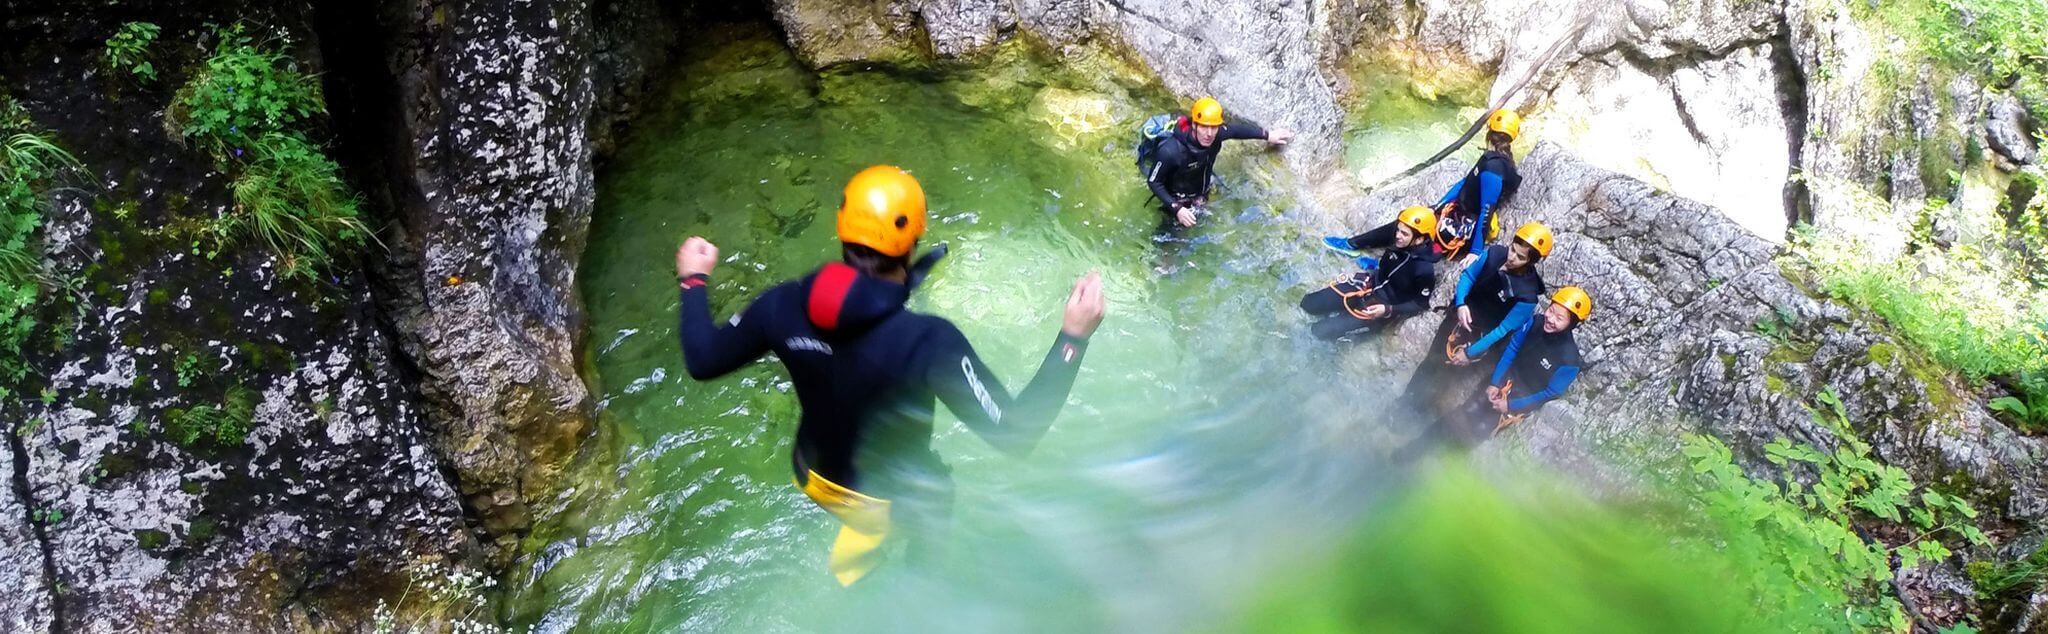 Canyoning dans Les Thuiles